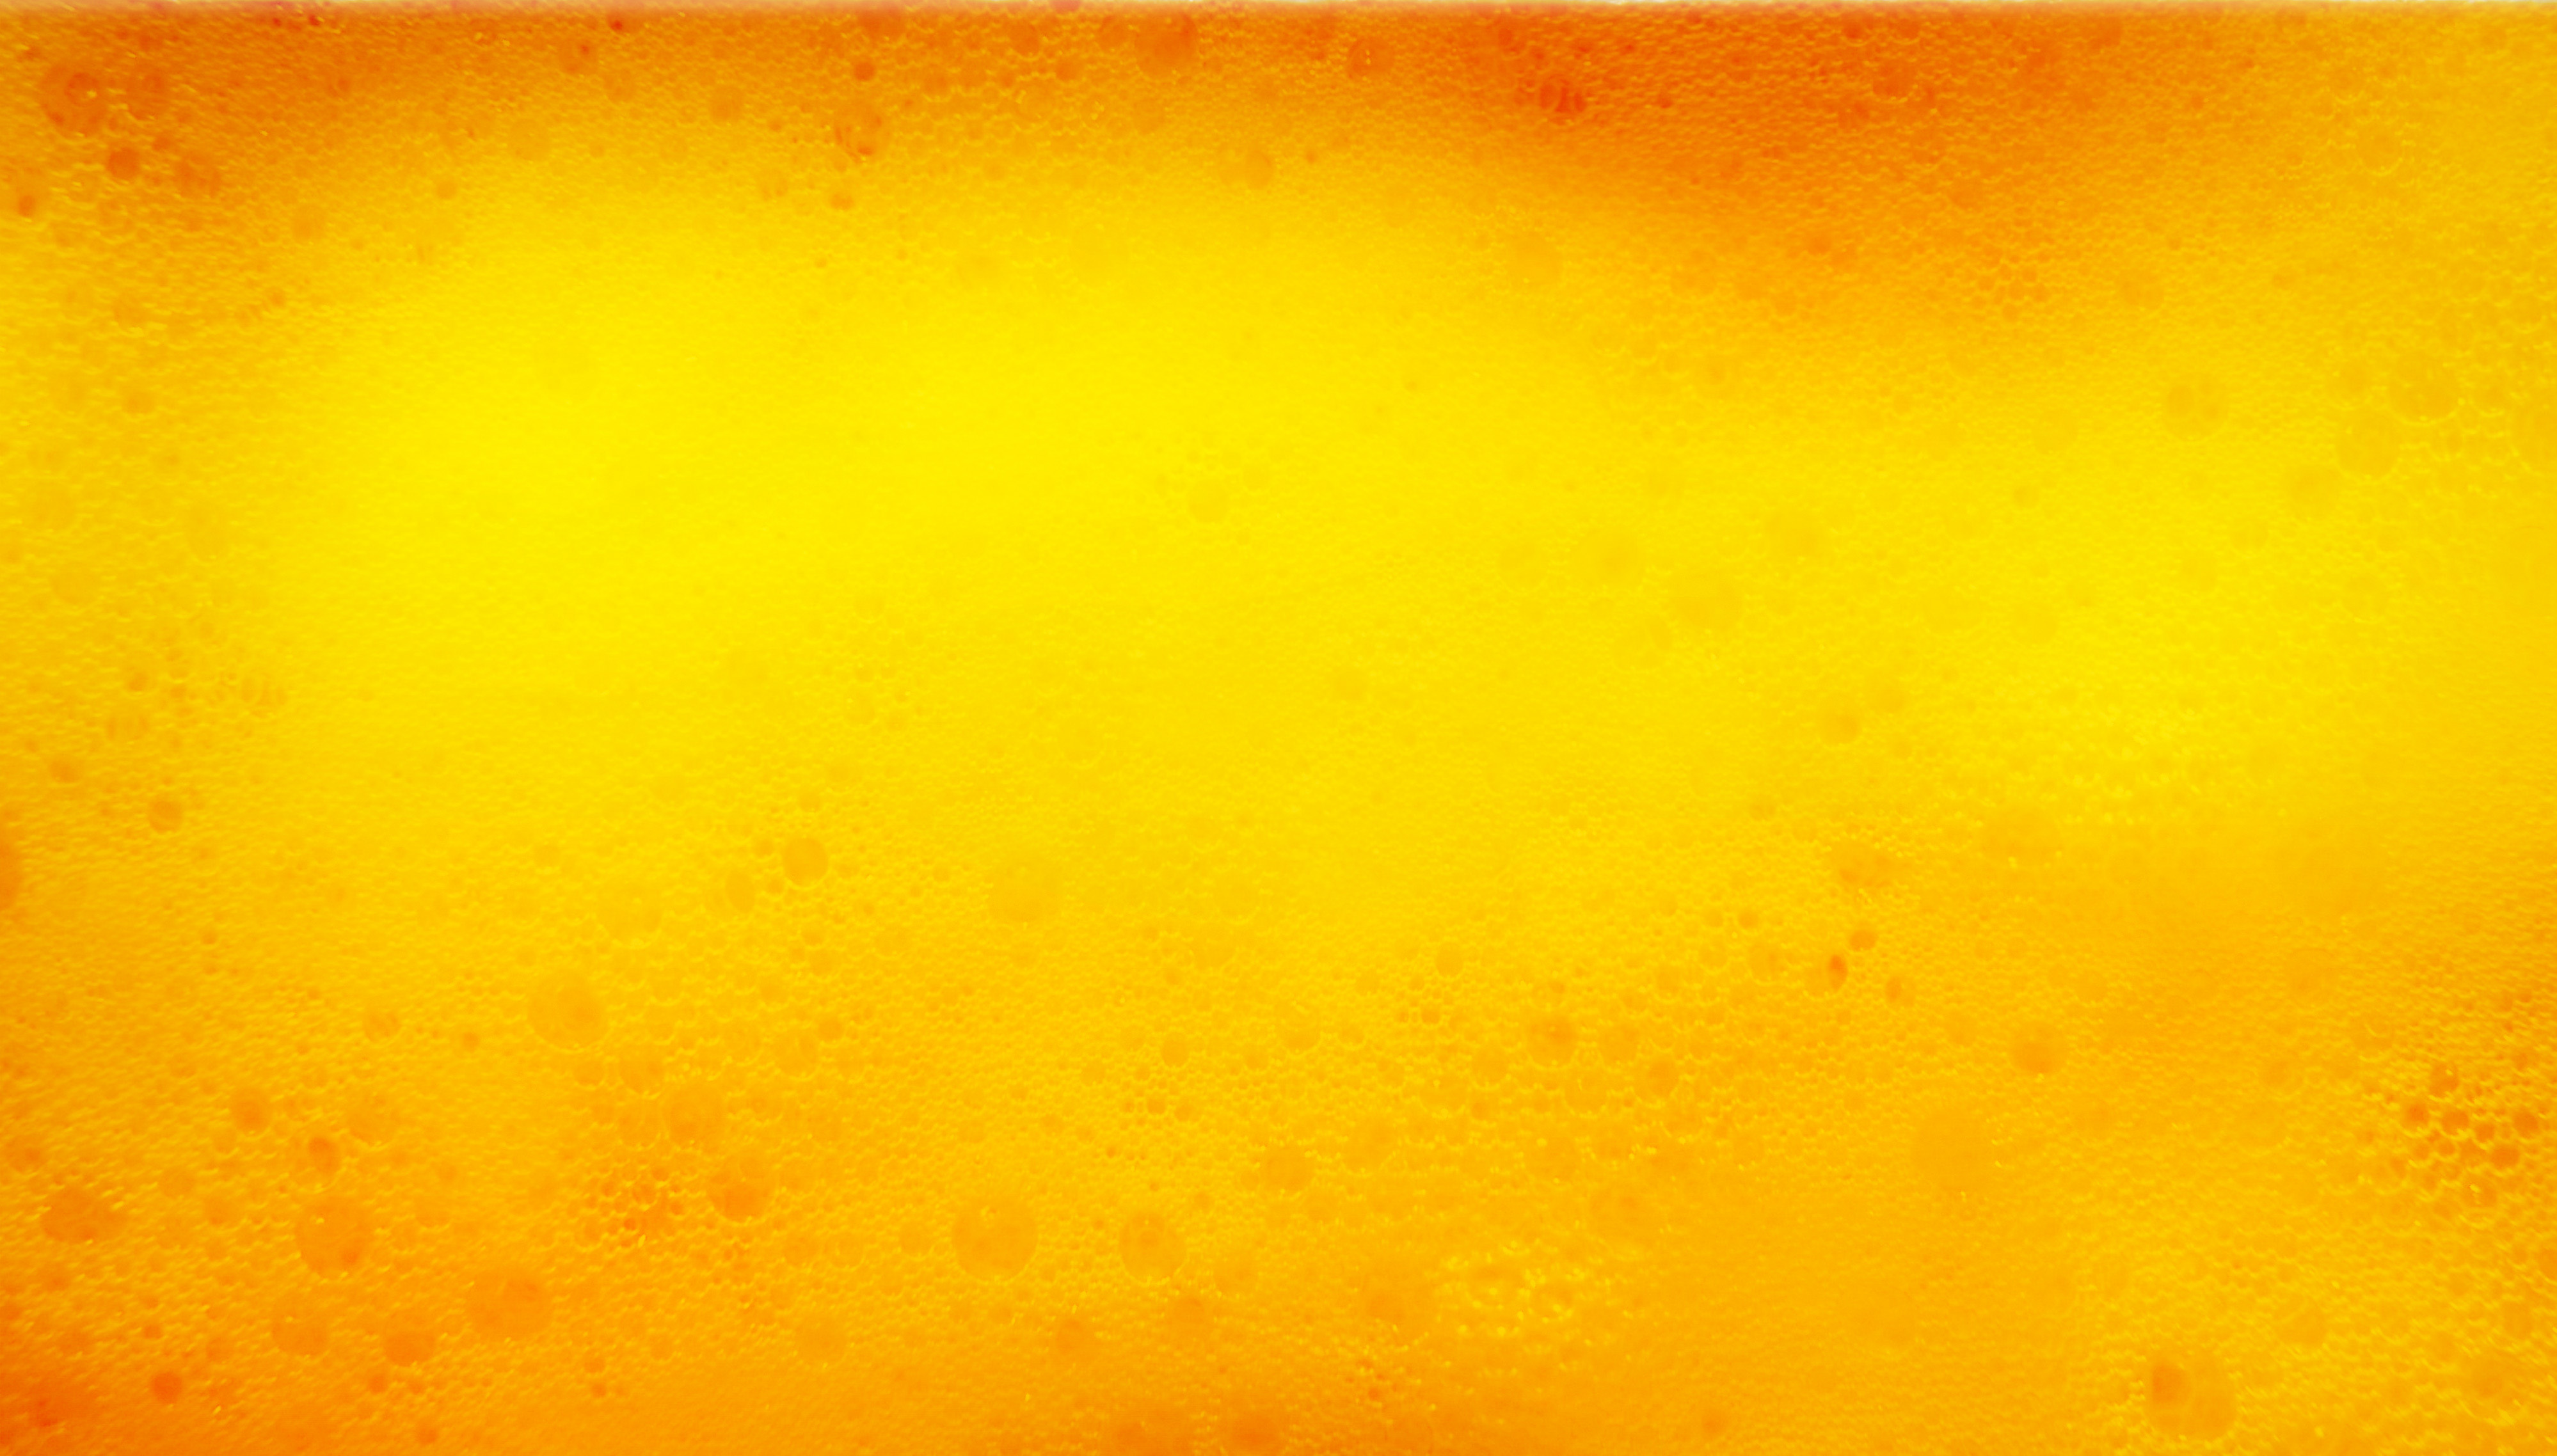 Пиво, текстура, фон, фото, beer background texture